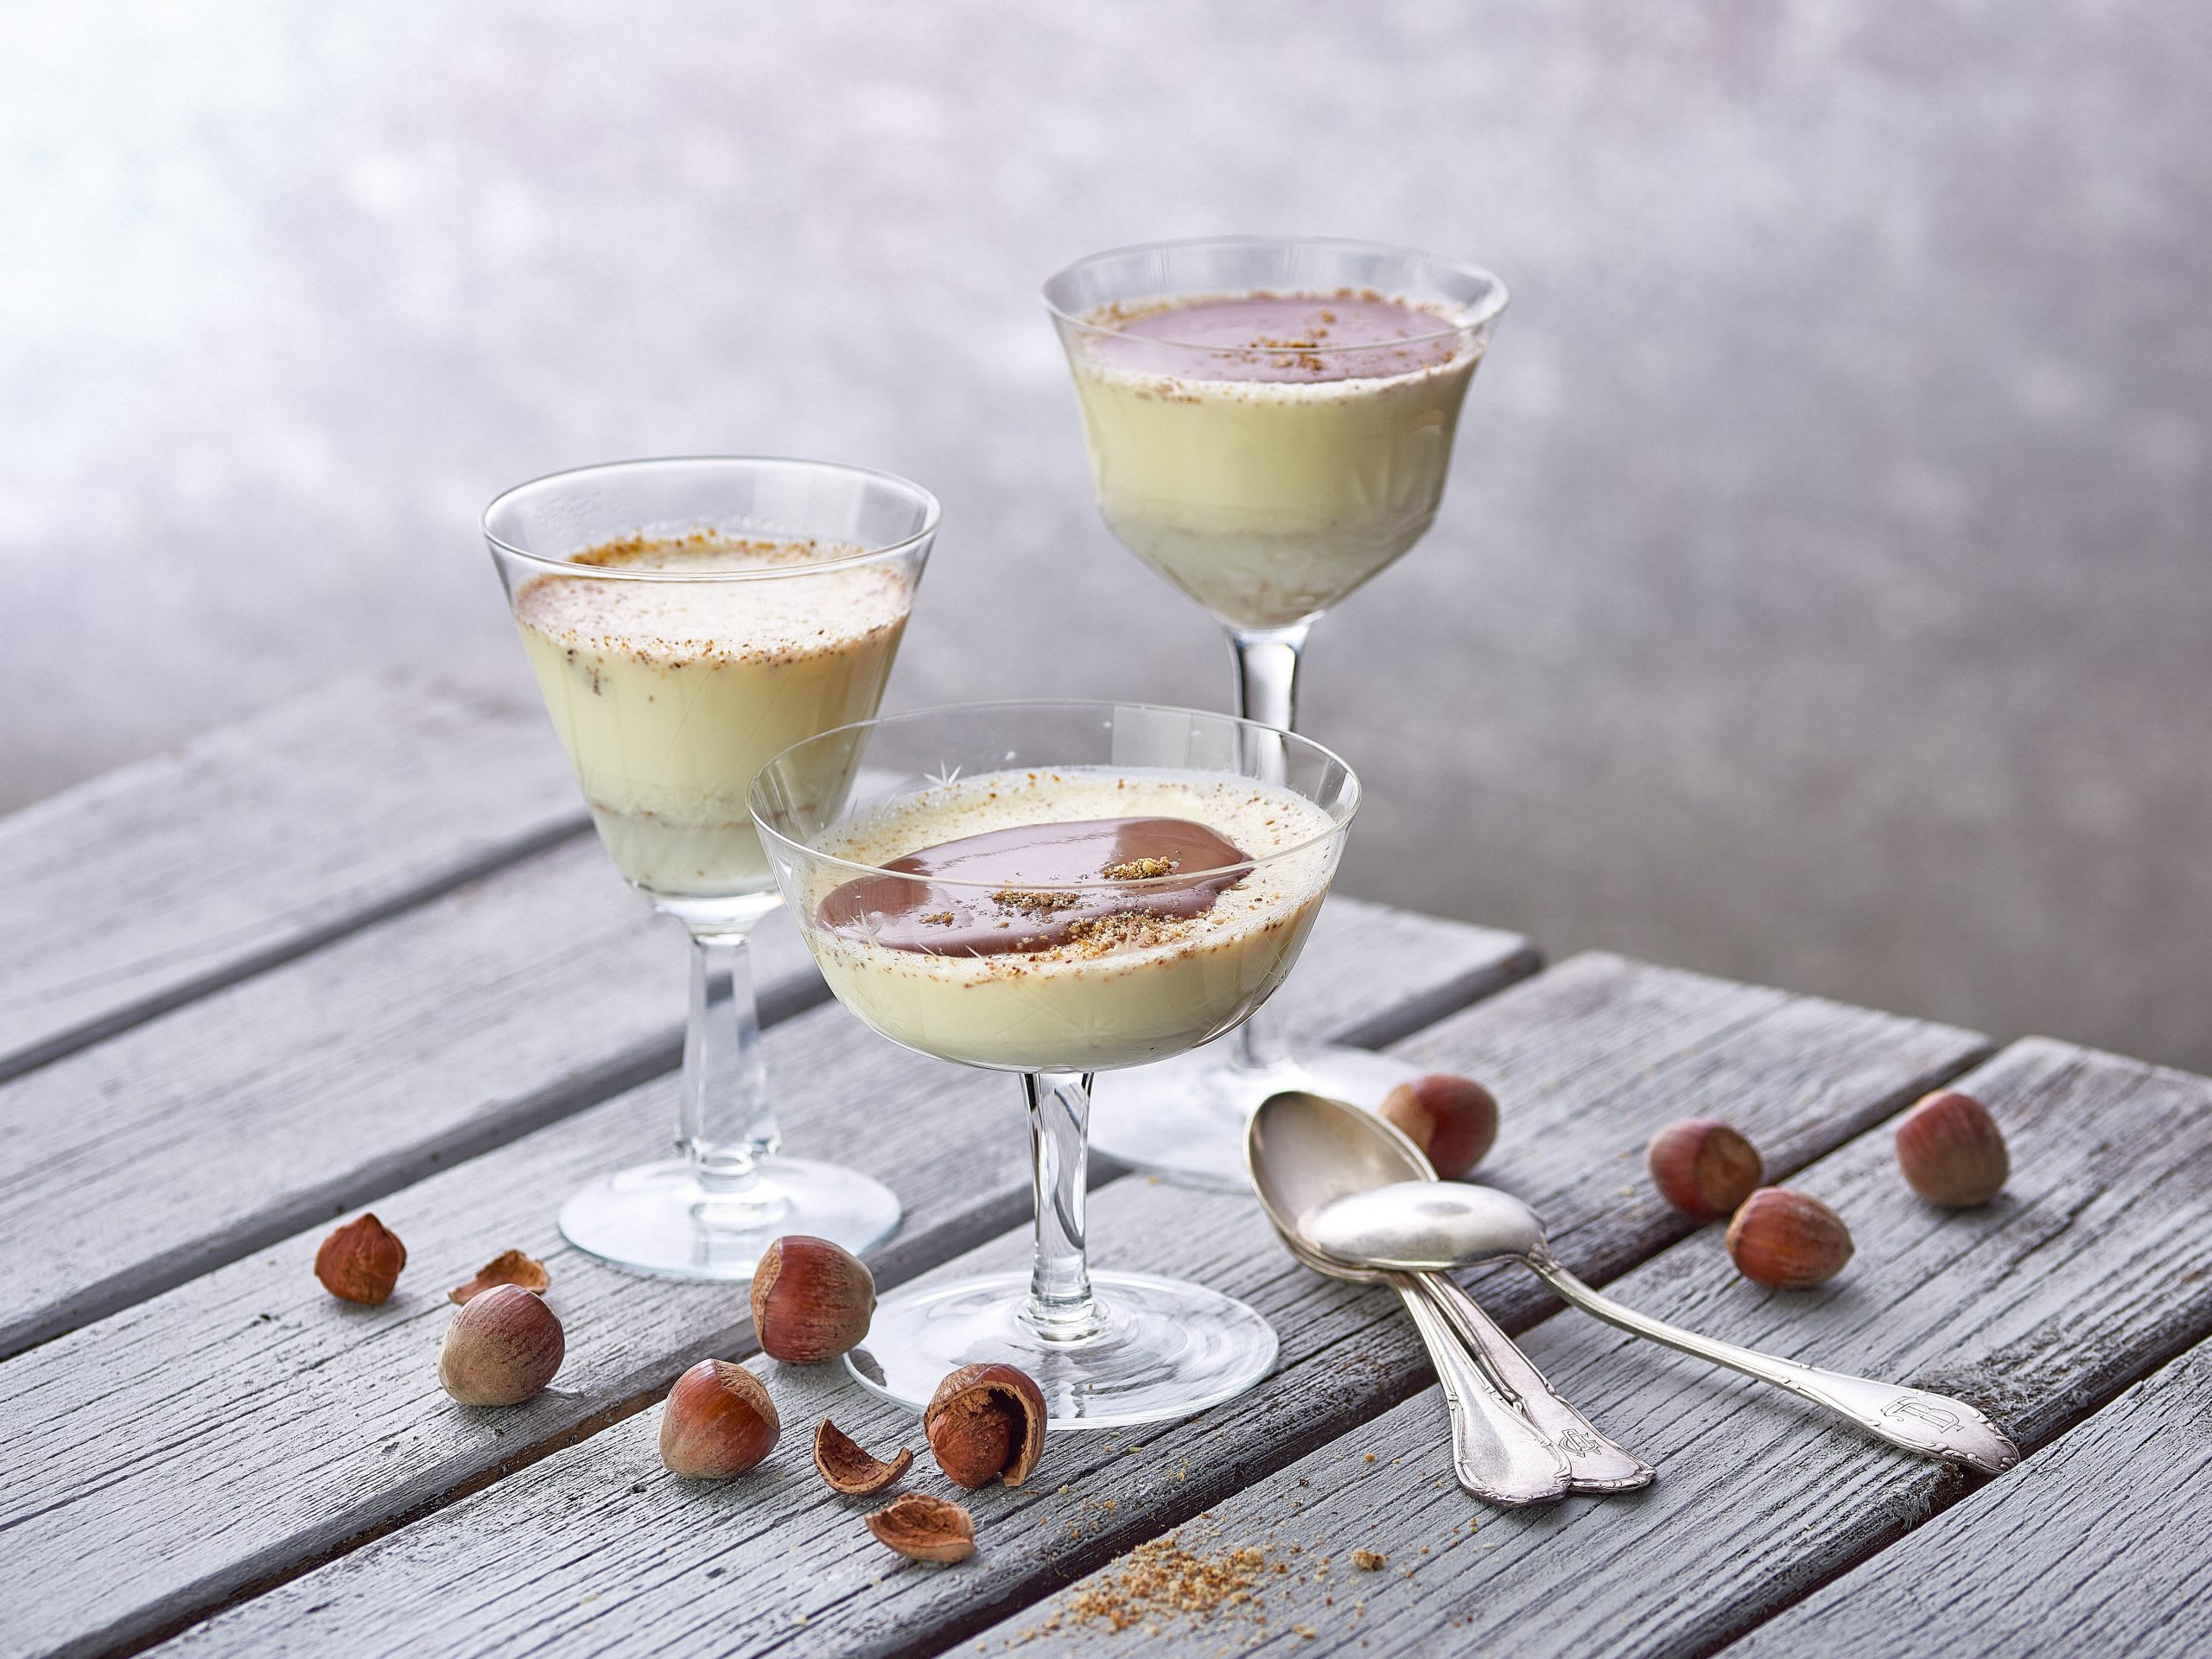 Haselnuss-Panna-cotta